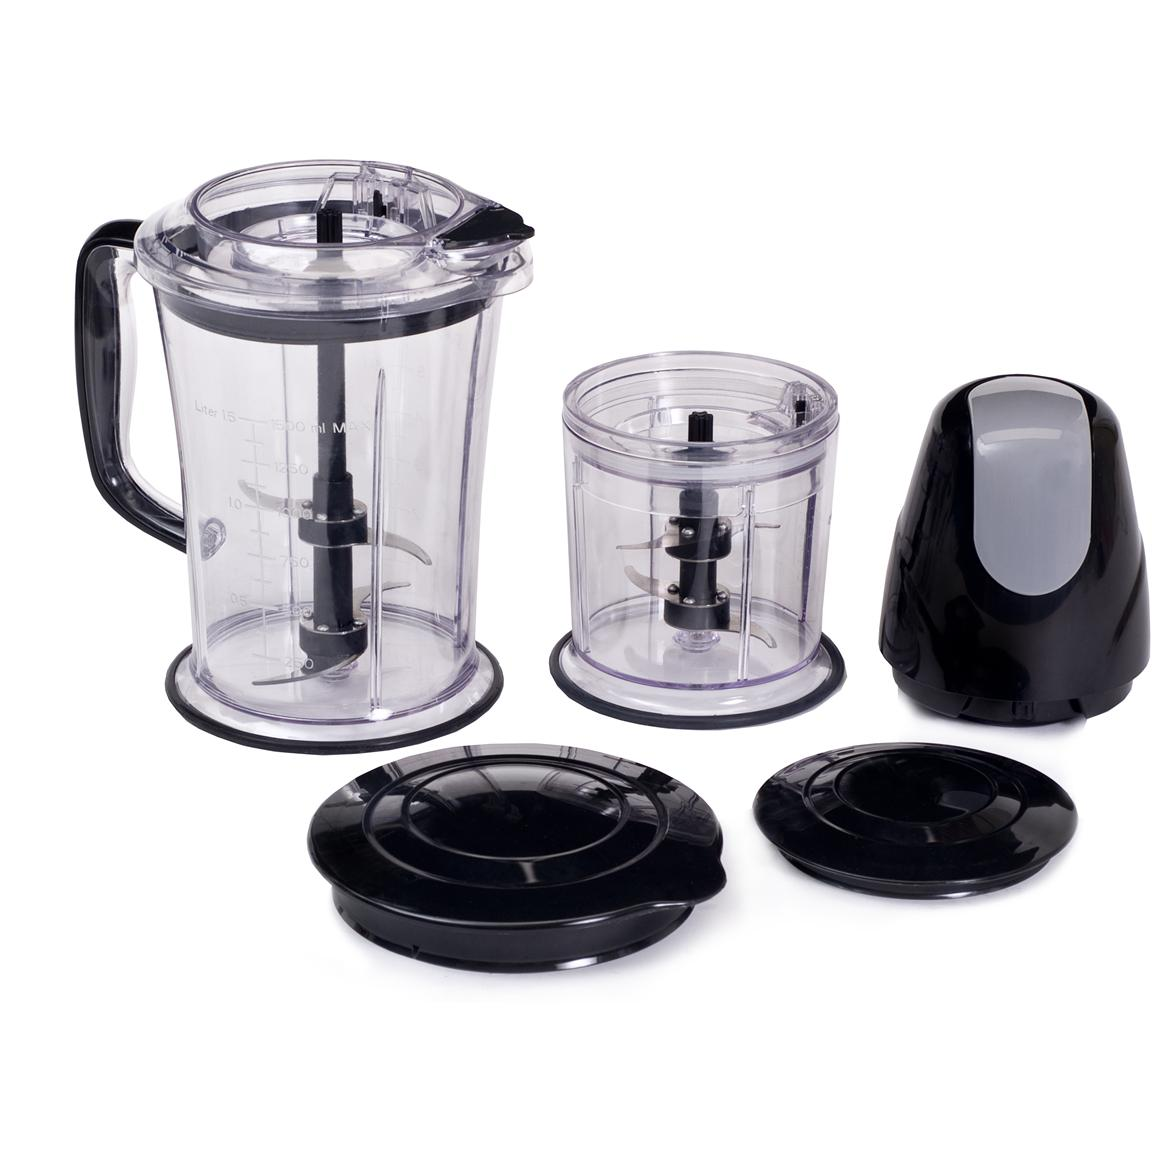 Uncategorized Seconds Kitchen Appliances multipurpose party blender 212984 kitchen appliances at this grinder cup blending lid and blades disassemble in seconds are